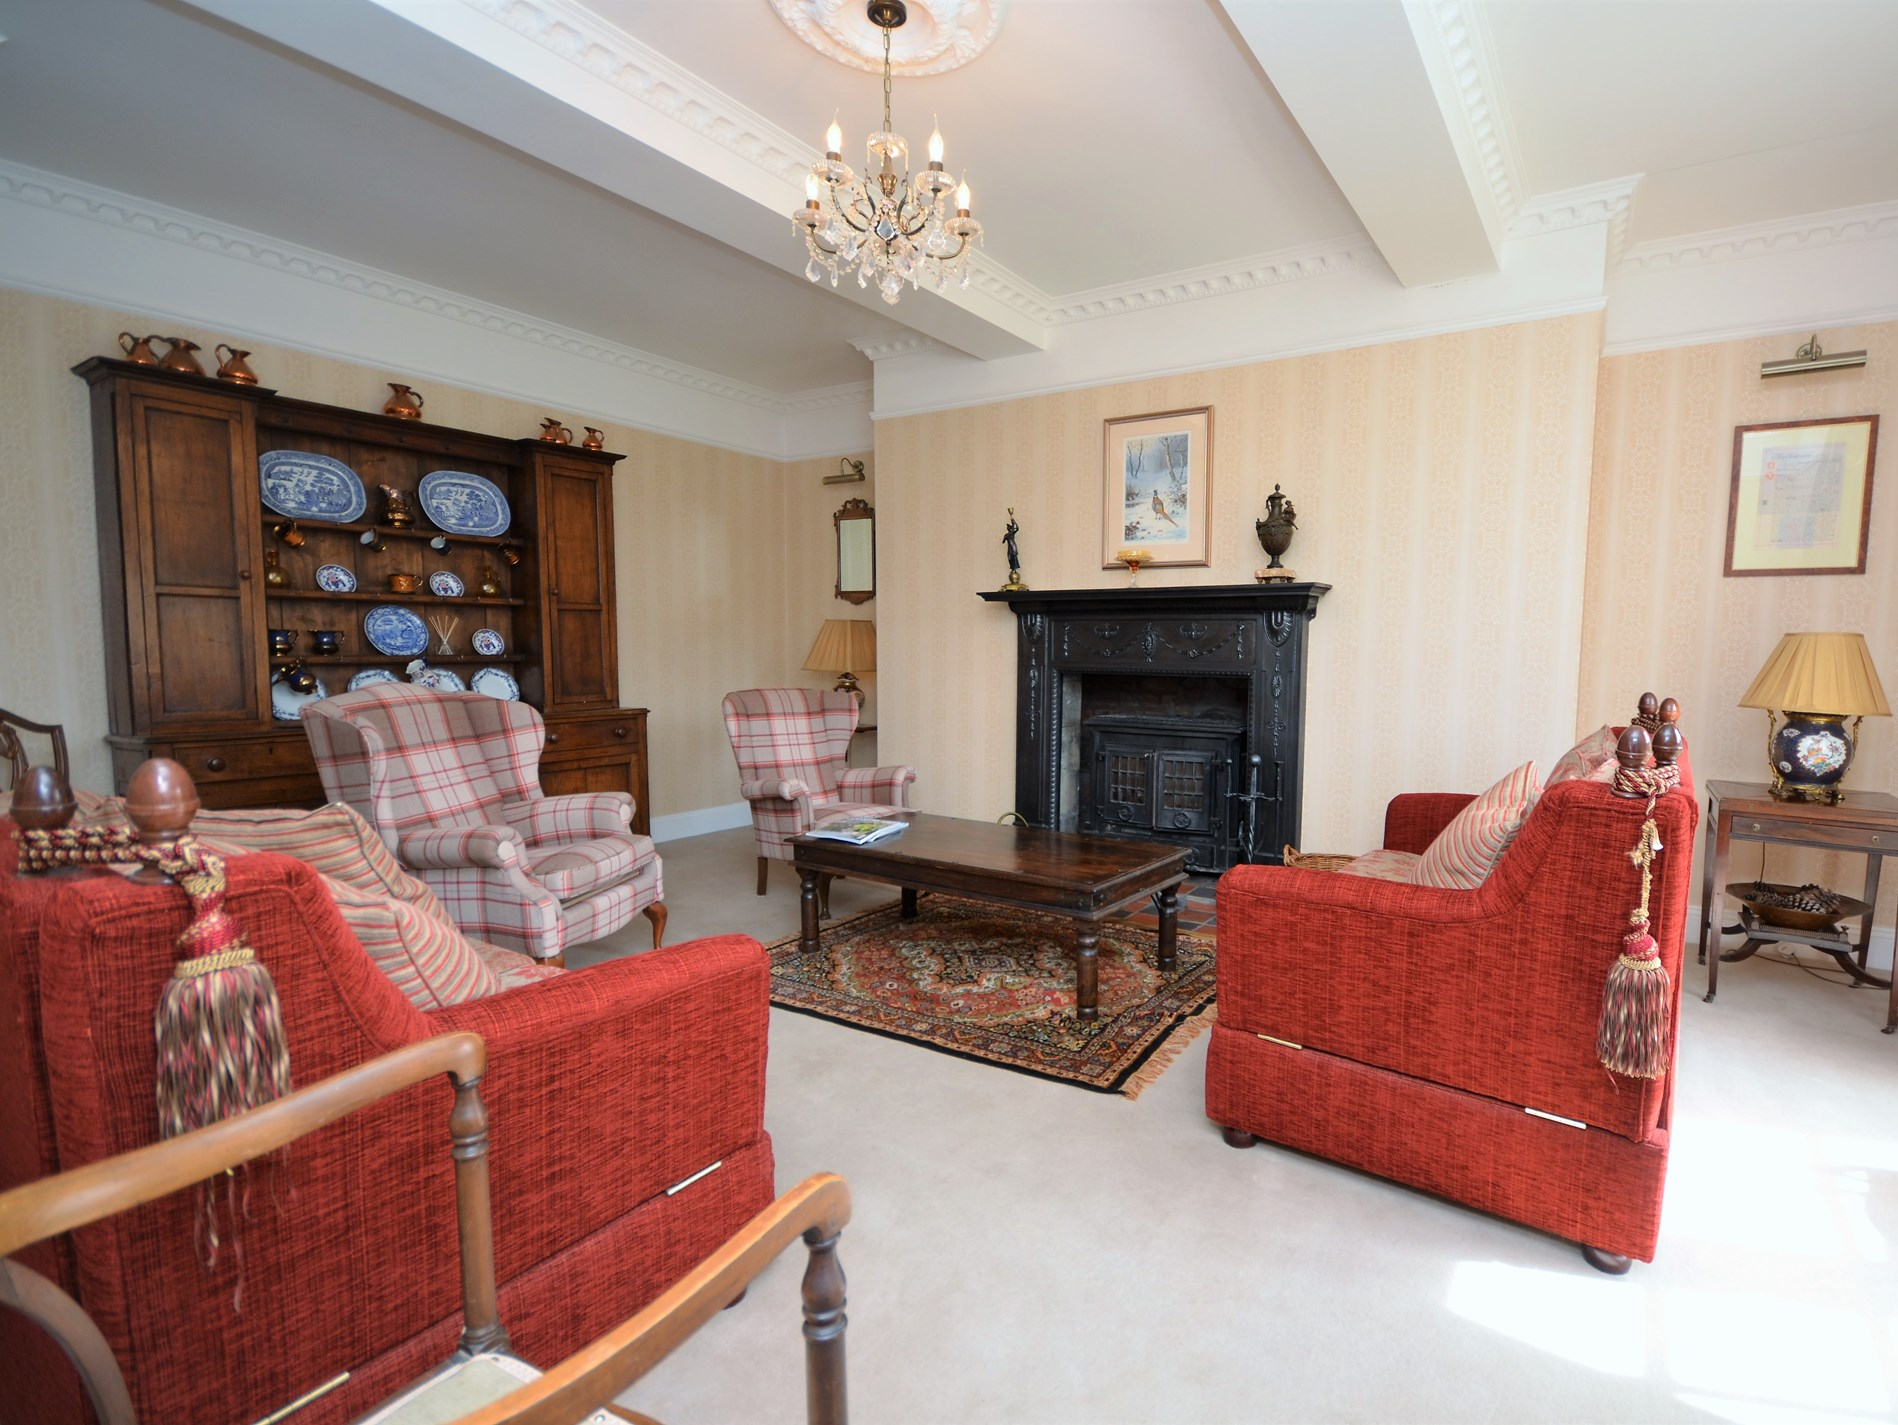 5 Bedroom Cottage in Newtown, Mid Wales